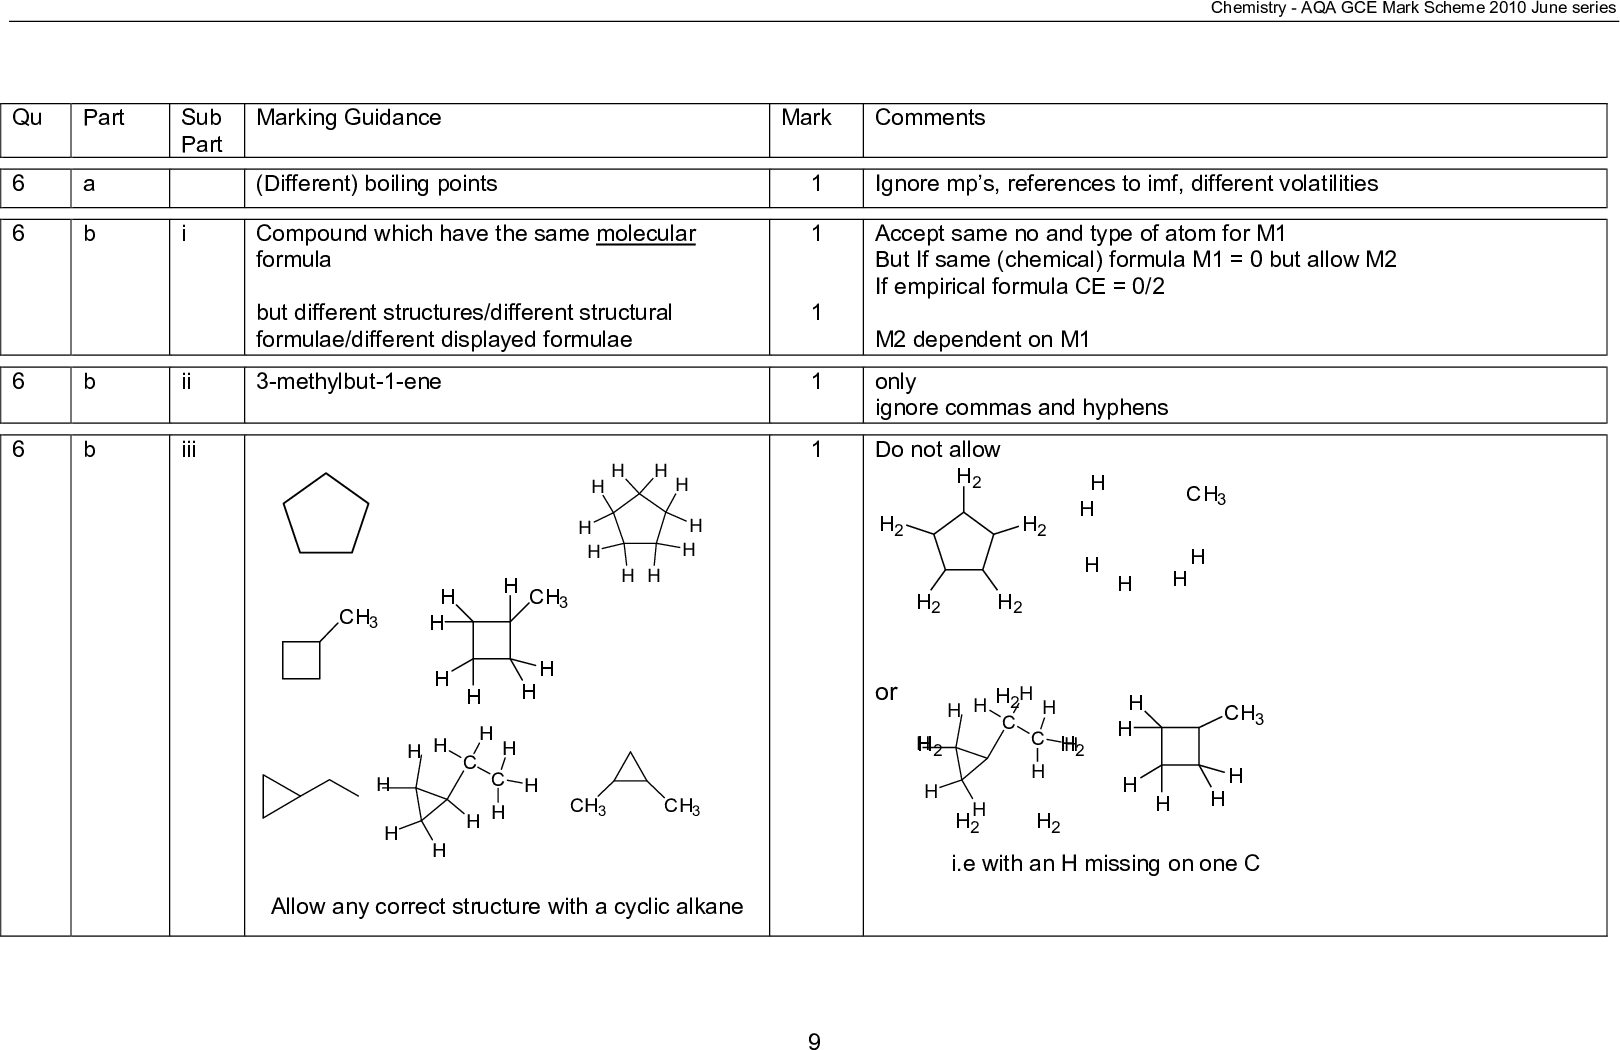 marking guidance mark comments chemistry aqa gce mark scheme june series different boiling points compound which have the same molecular formula but different structures different structural formulae different displayed formulae methylbut ene ignore mp s references to imf different volatilities accept same no and type of atom for m but if same chemical formula m but allow m if empirical formula ce m dependent on m only ignore commas and hyphens do not allow sub part i ii iii qu part a b allow any correct structure with a cyclic alkane or i e with an h missing on one c c h making plastics used to make polymers or polythene used to make antifreeze make ethanol ripening fruit any named additional polymer chemistry aqa gce mark scheme june series only not used as a plastic polymer antifreeze not just polymers we need to see that they are being made